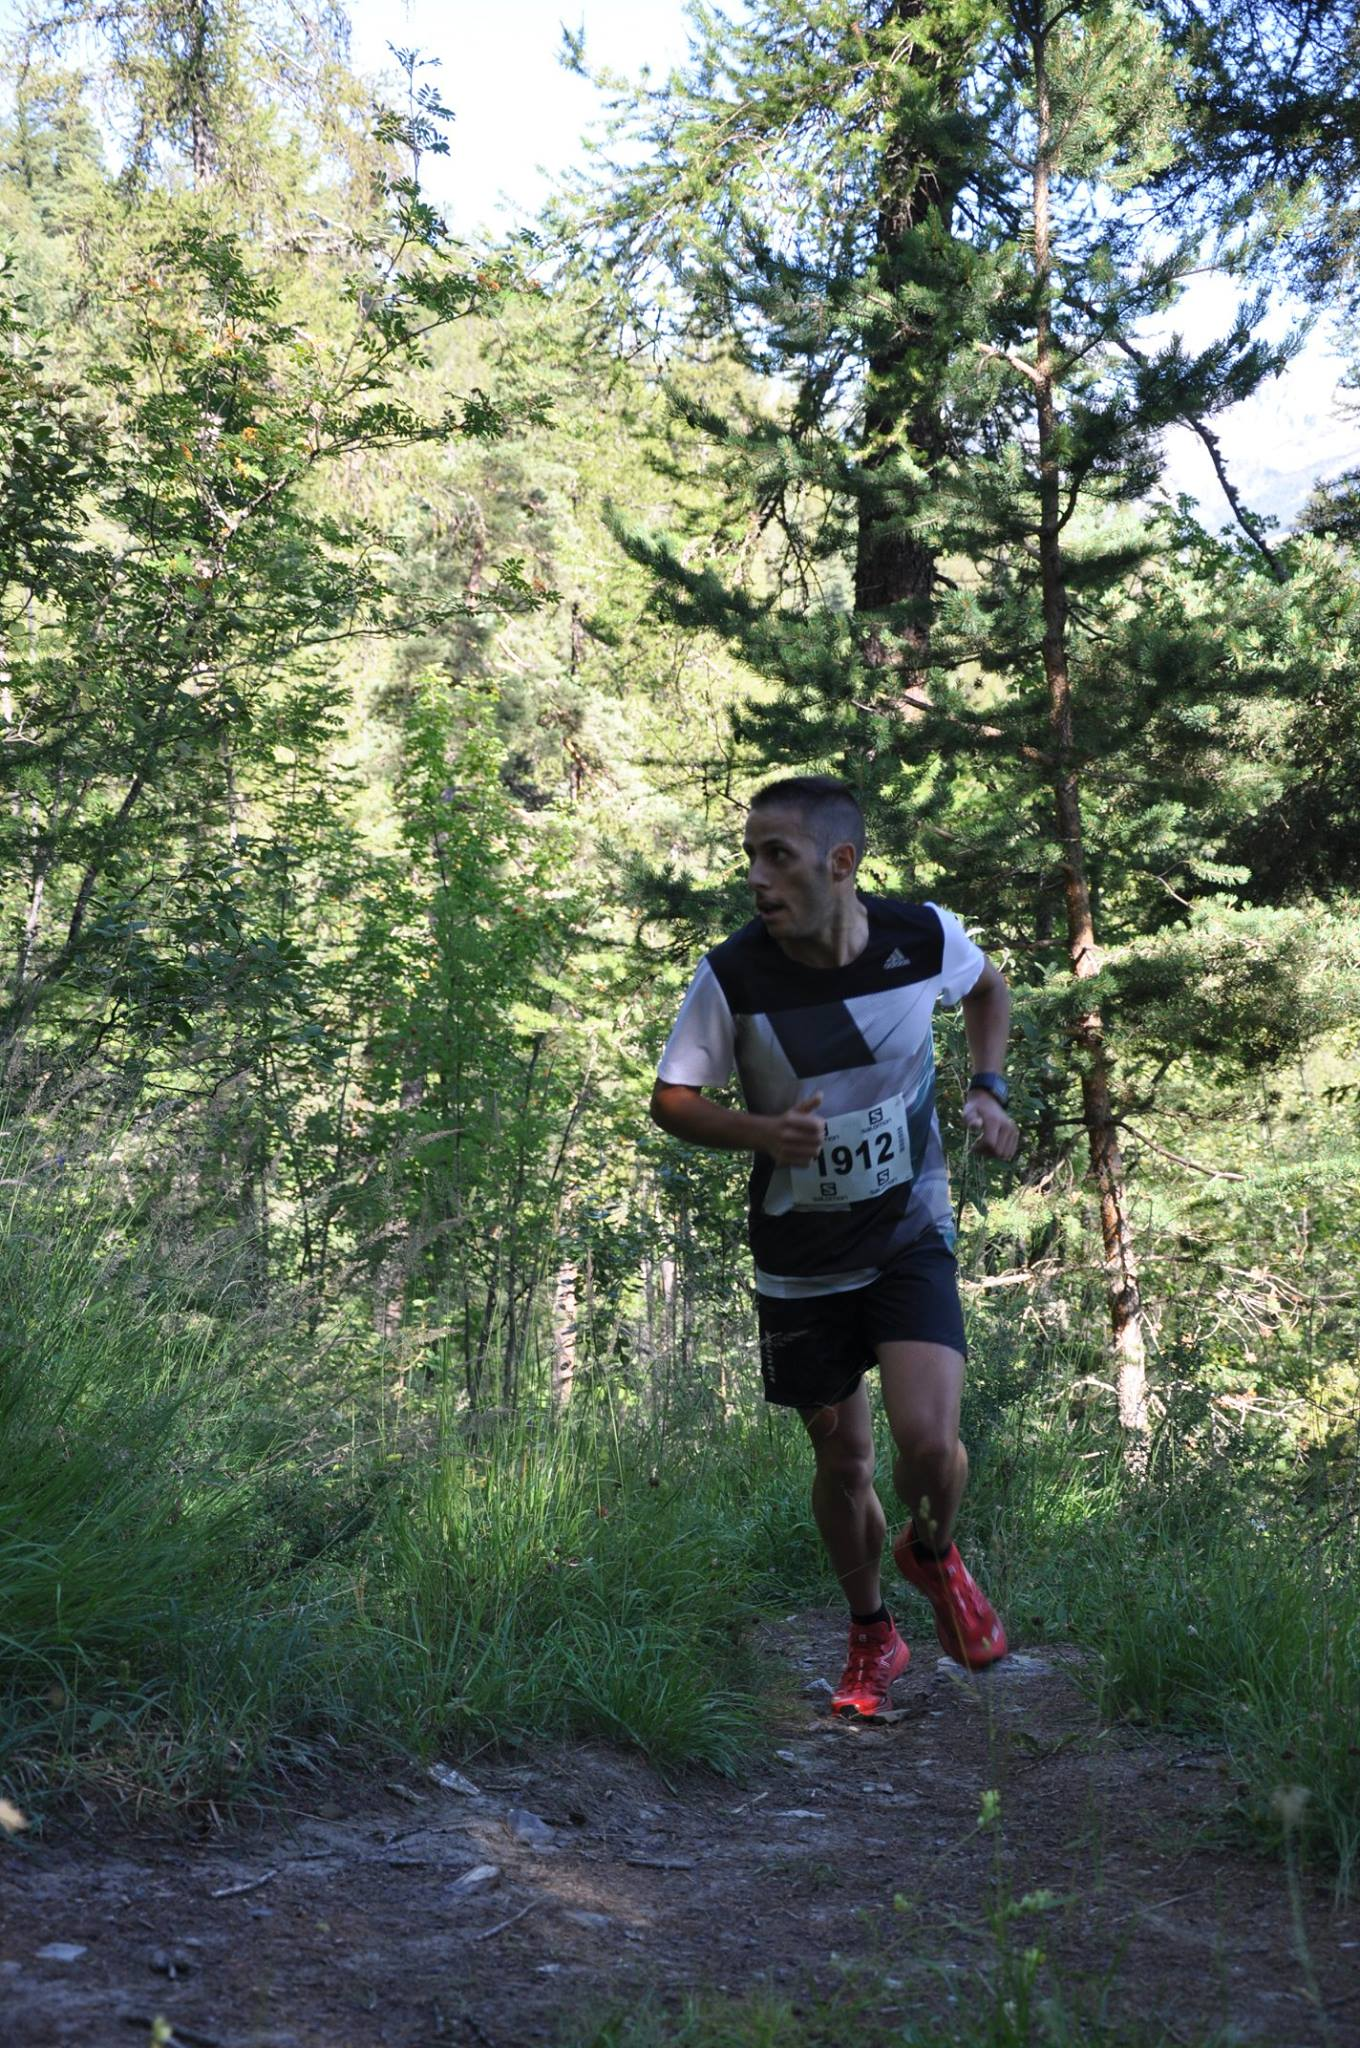 13909029 1031183696930444 2341543670236425125 o - NATIONAL : RESULTATS ET VIDEO DE L'UBAYE TRAIL SALOMON